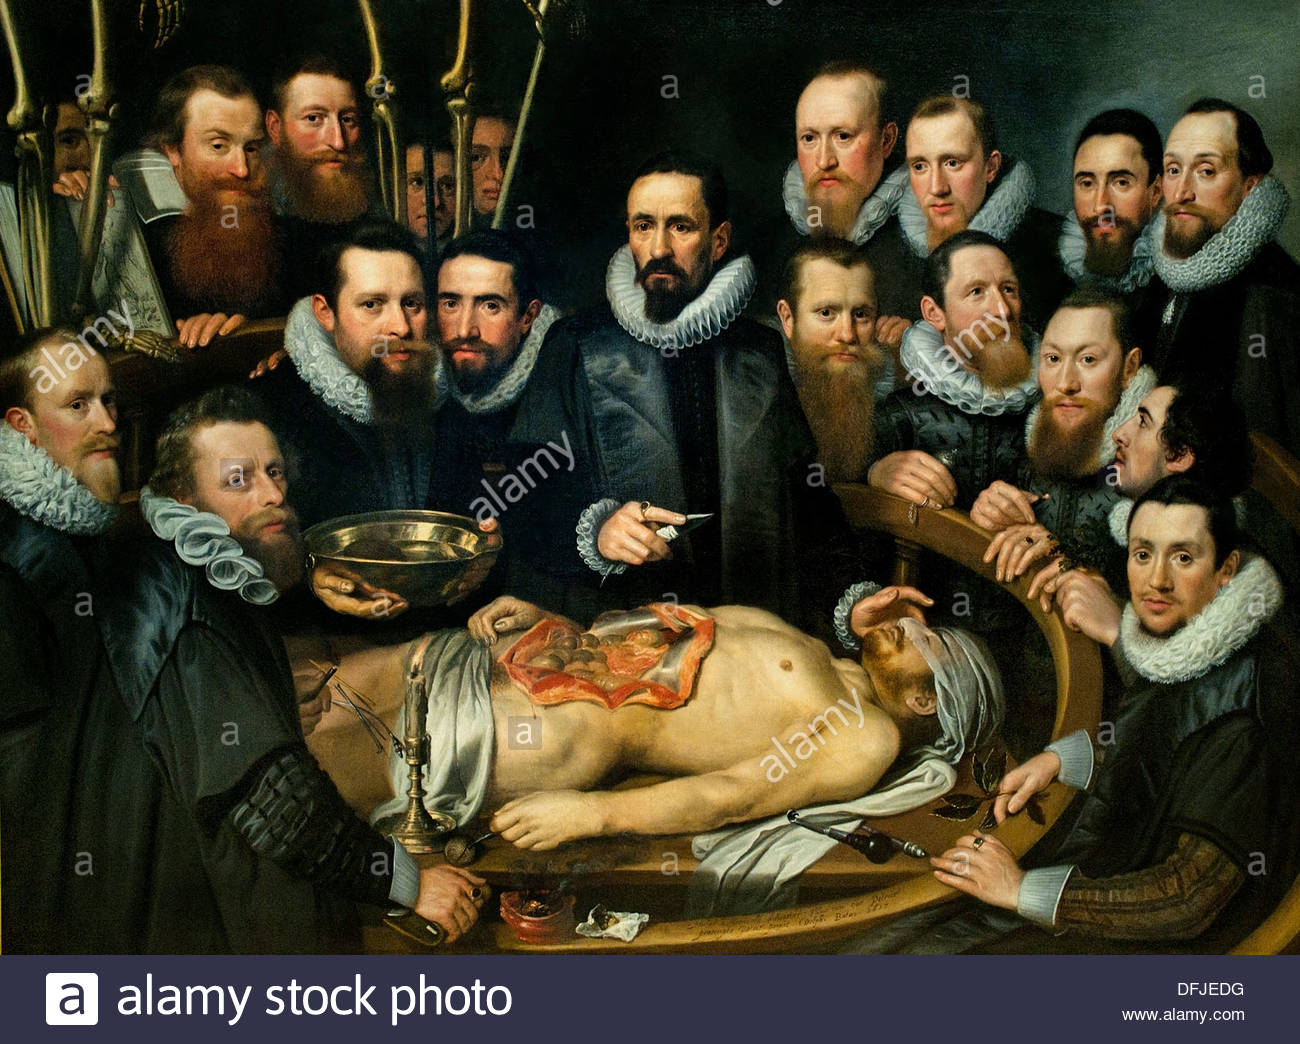 The anatomy of lesson of dr nicolaes tulp clipart - Clipground